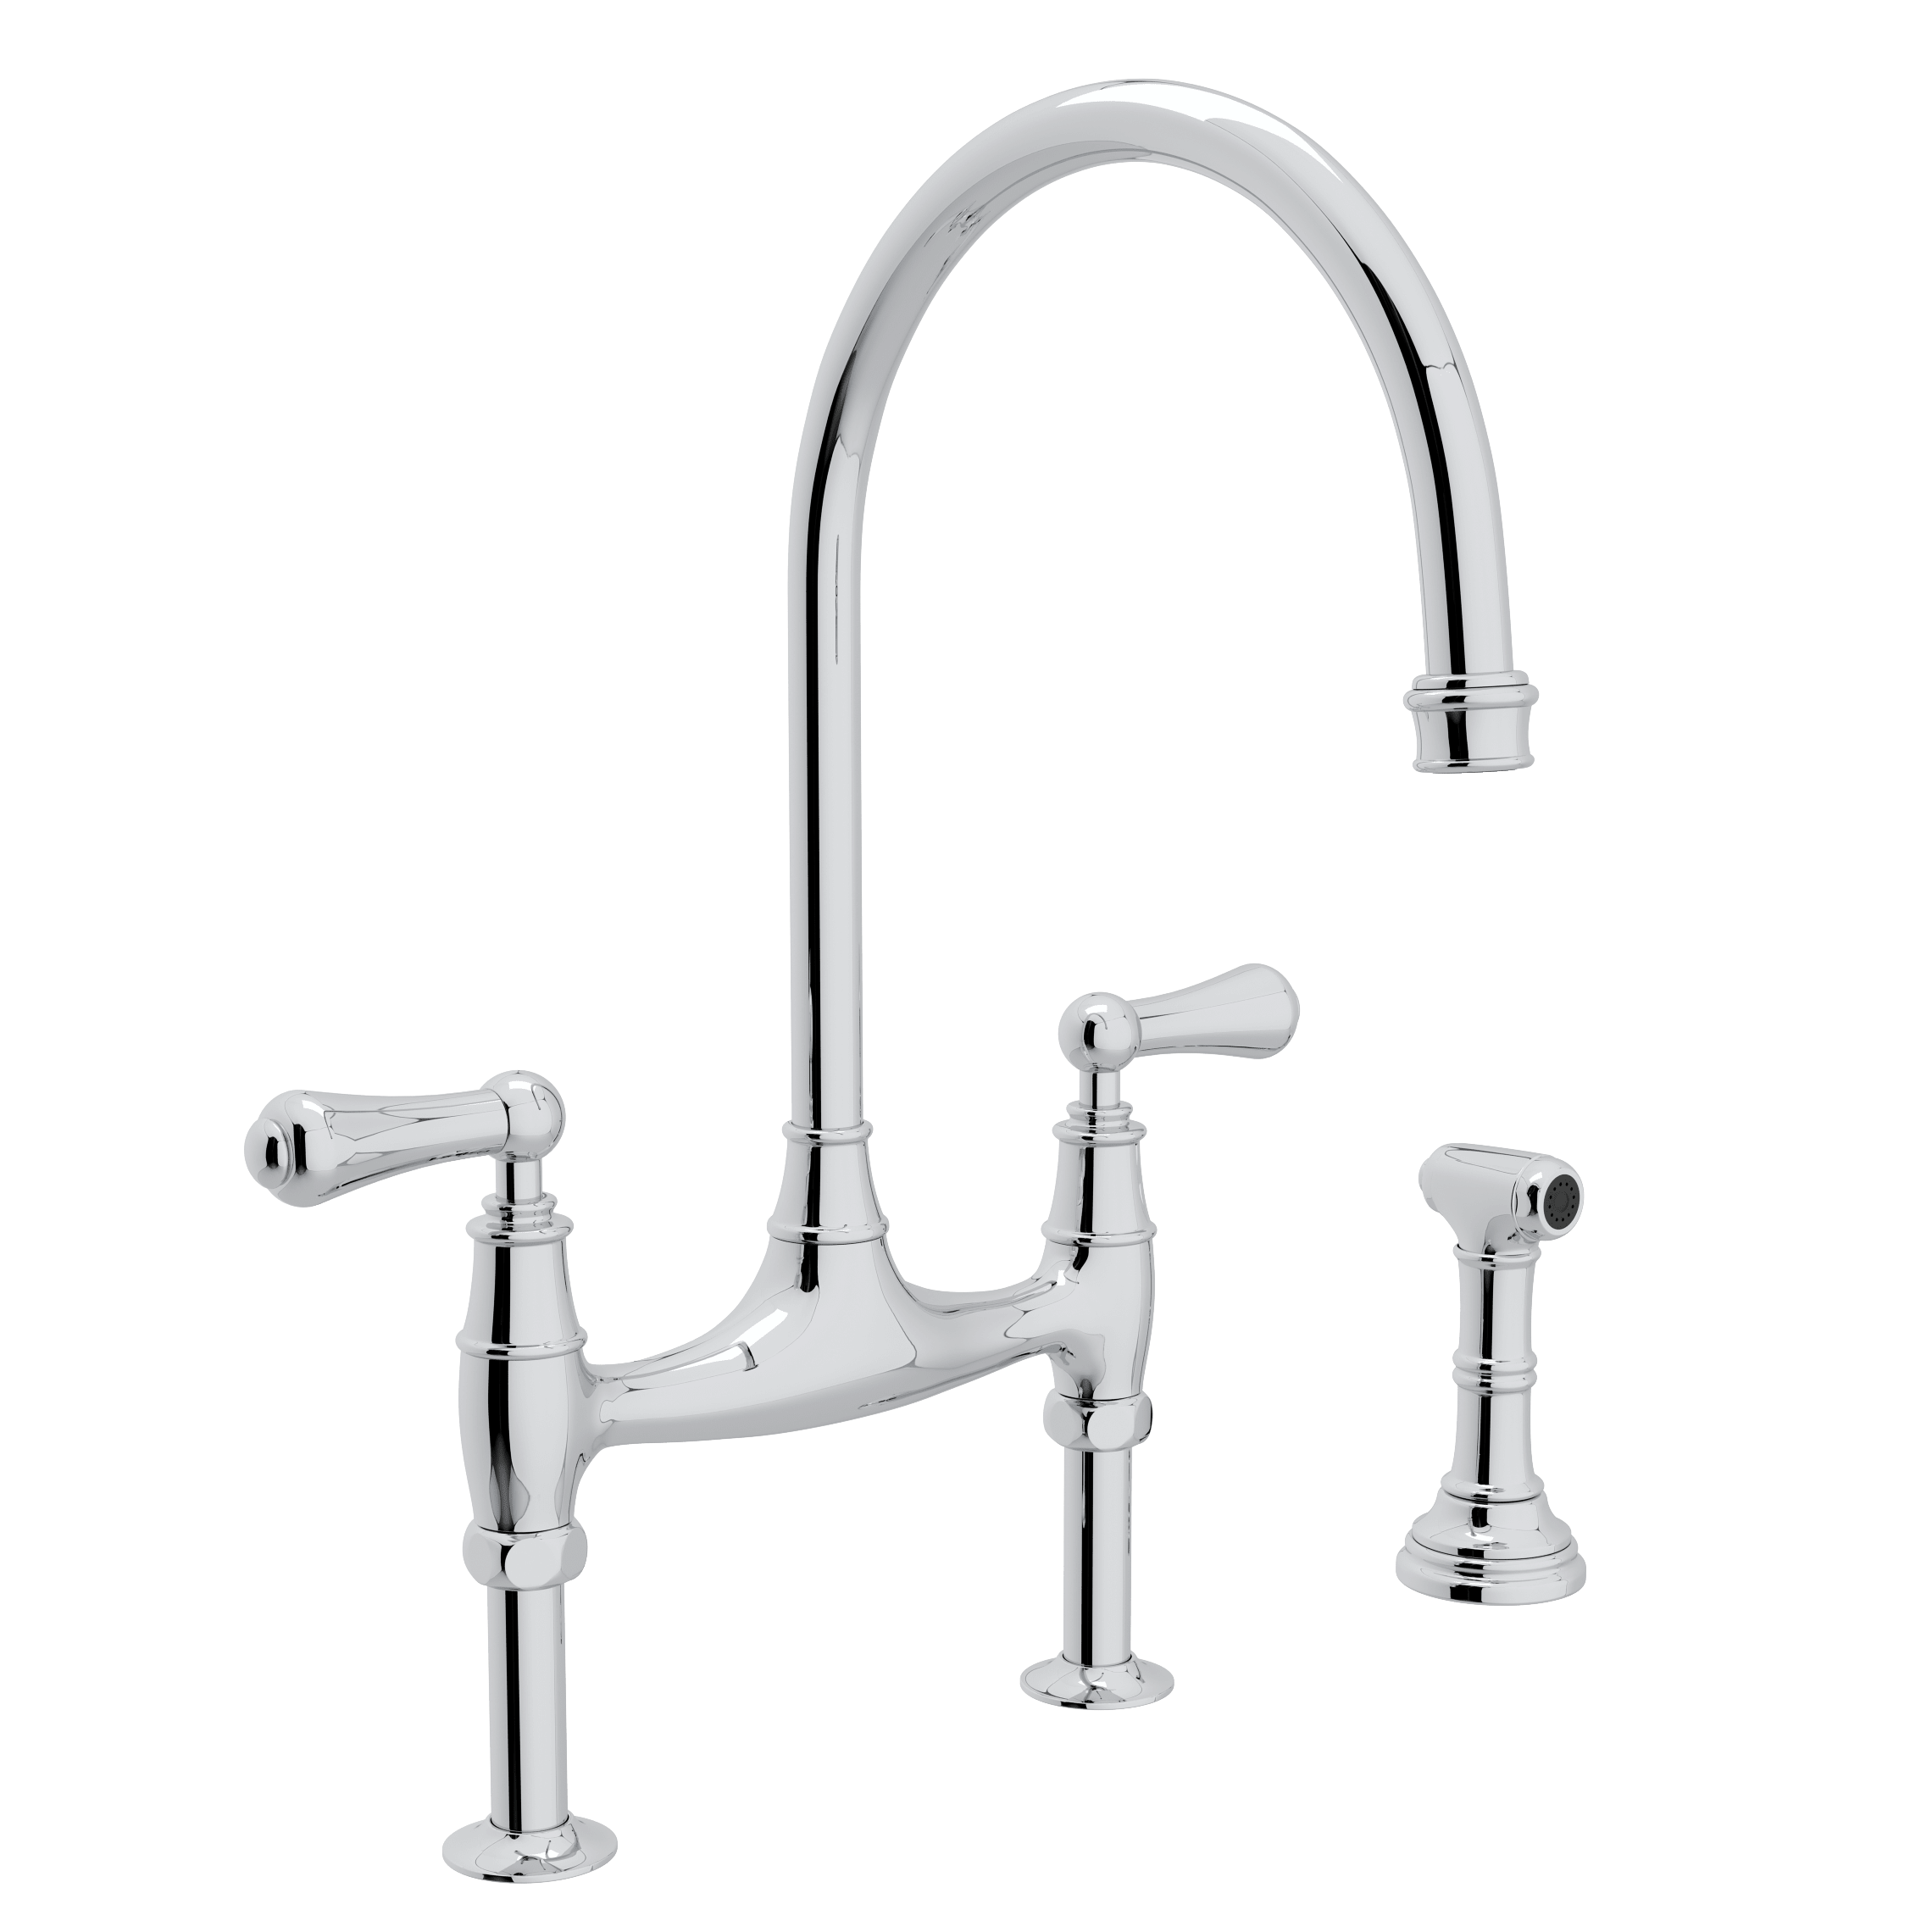 Rohl U.4718/U.4719 Perrin & Rowe Bridge Faucet With Sidespray ...